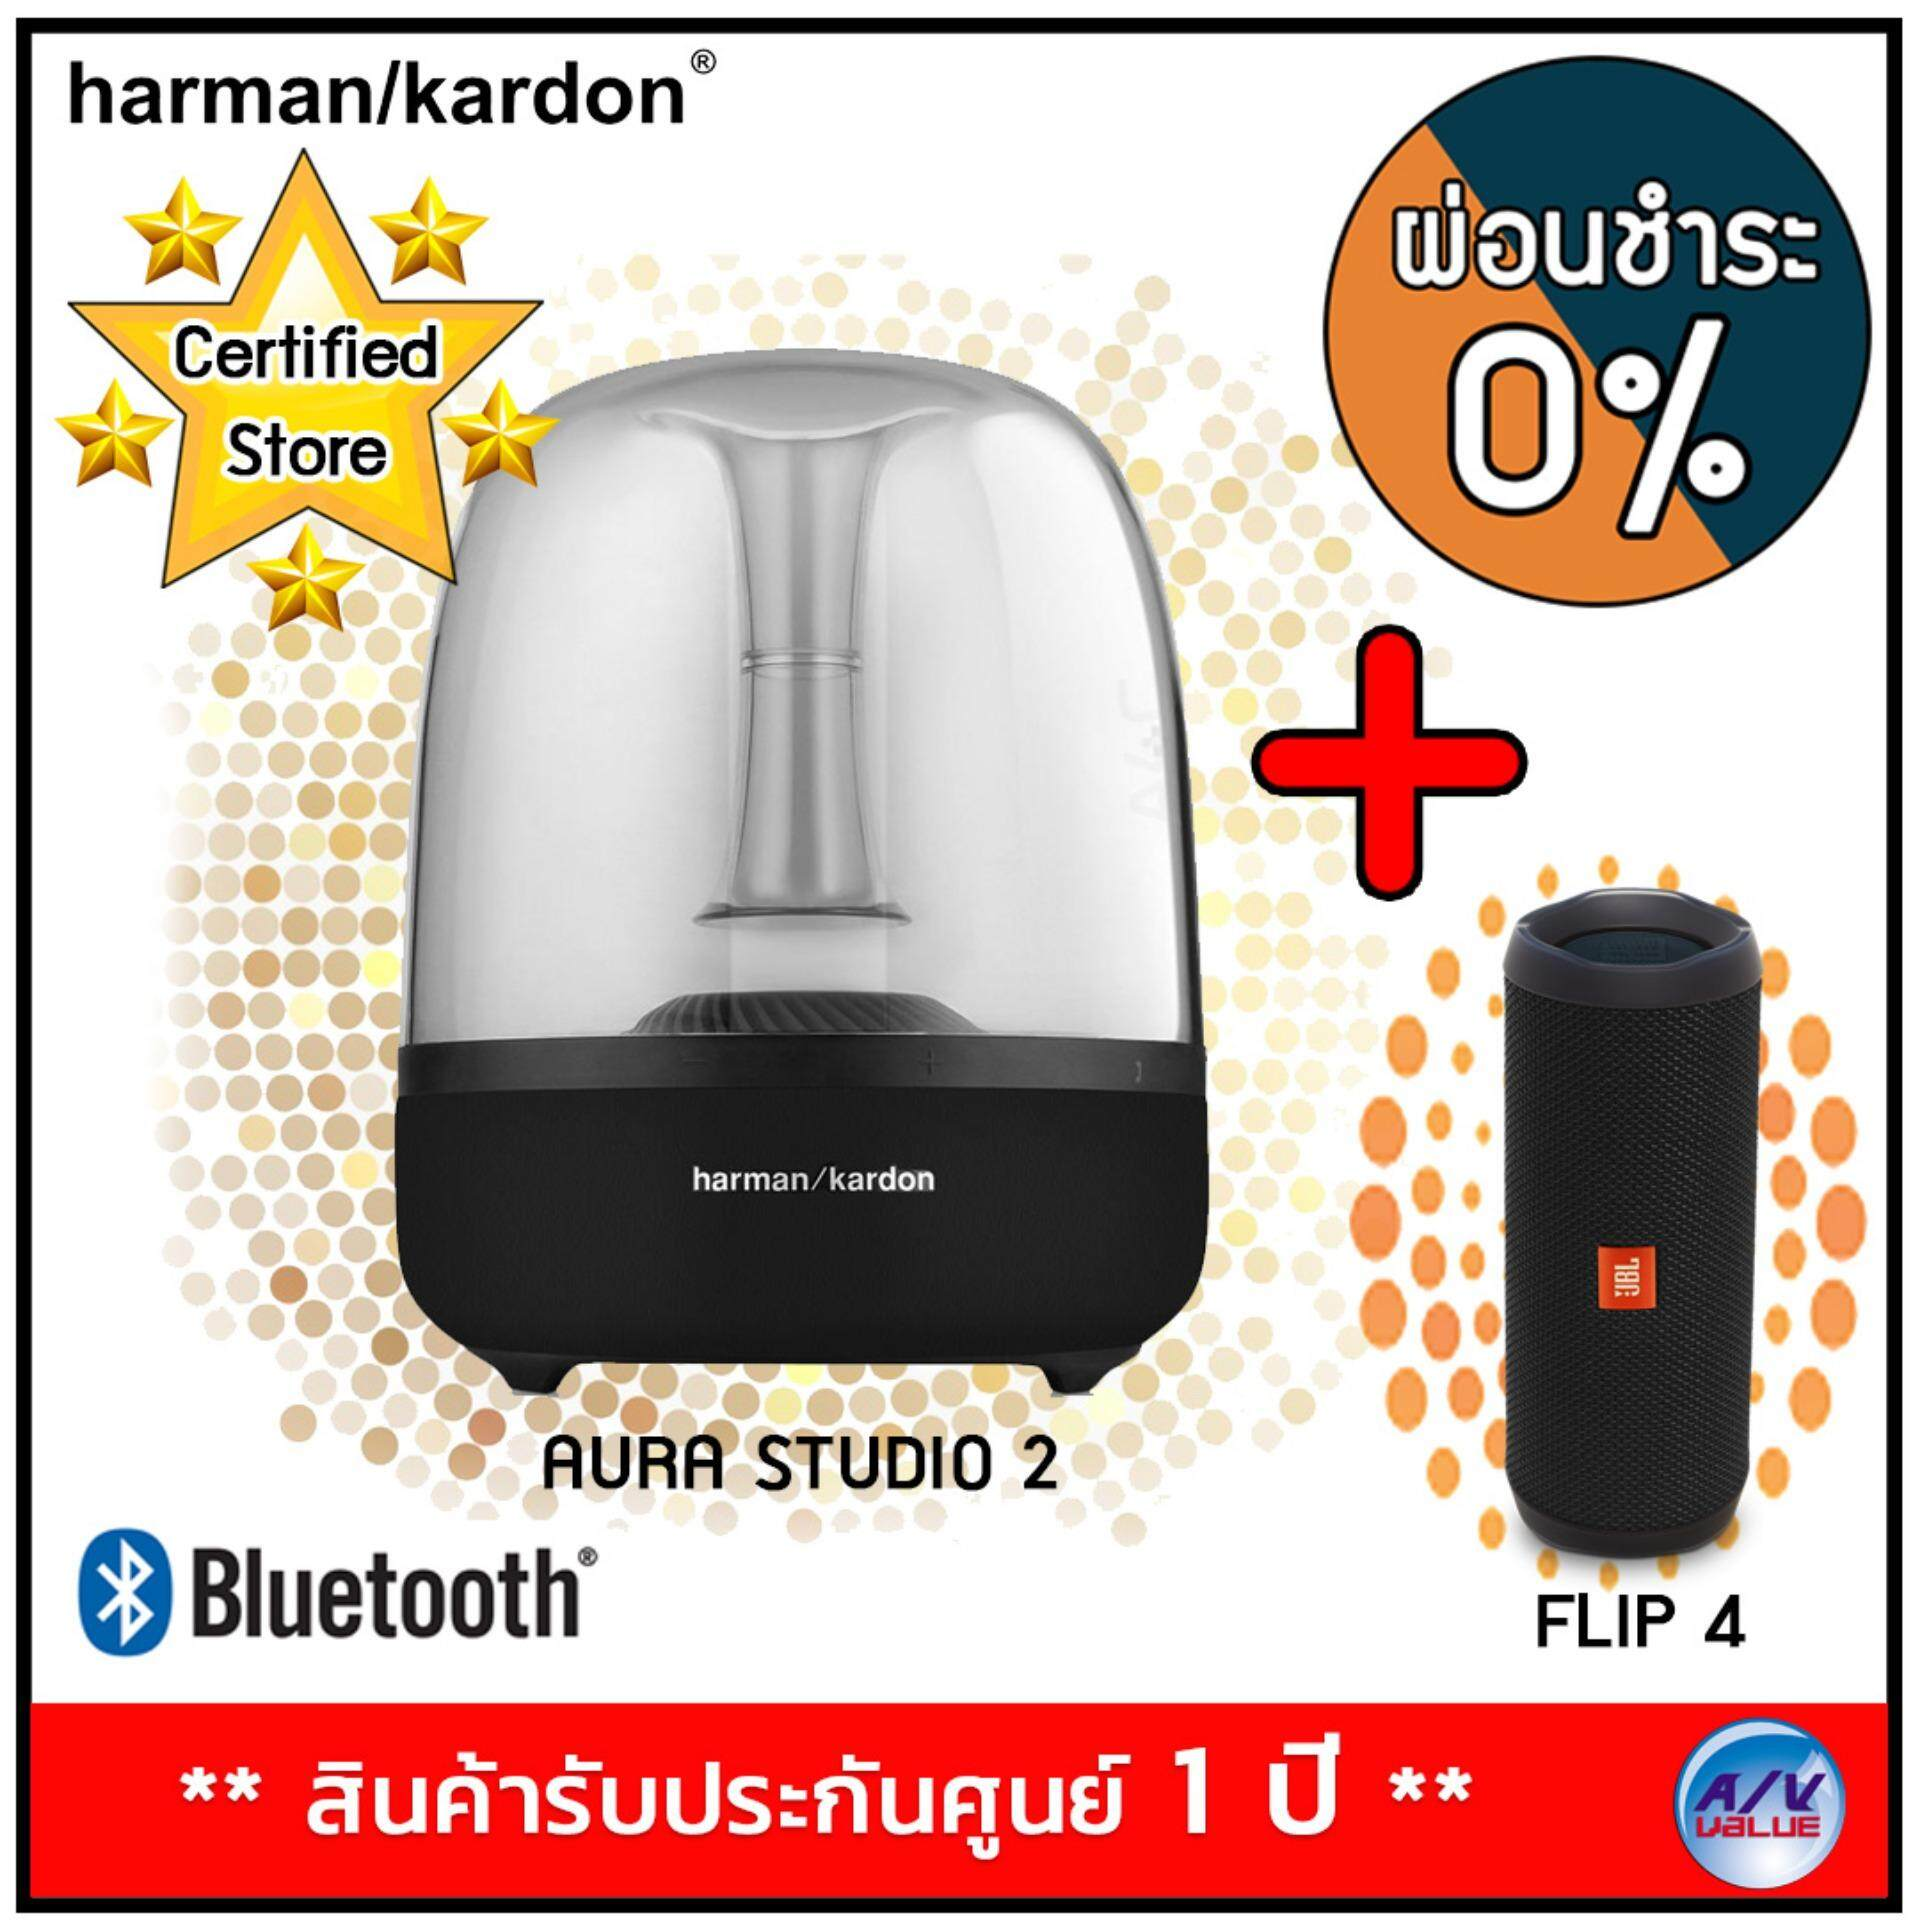 ยี่ห้อนี้ดีไหม  พิจิตร Harman Kardon AURA STUDIO 2 - Black + JBL FLIP 4 waterproof portable Bluetooth speaker - Black